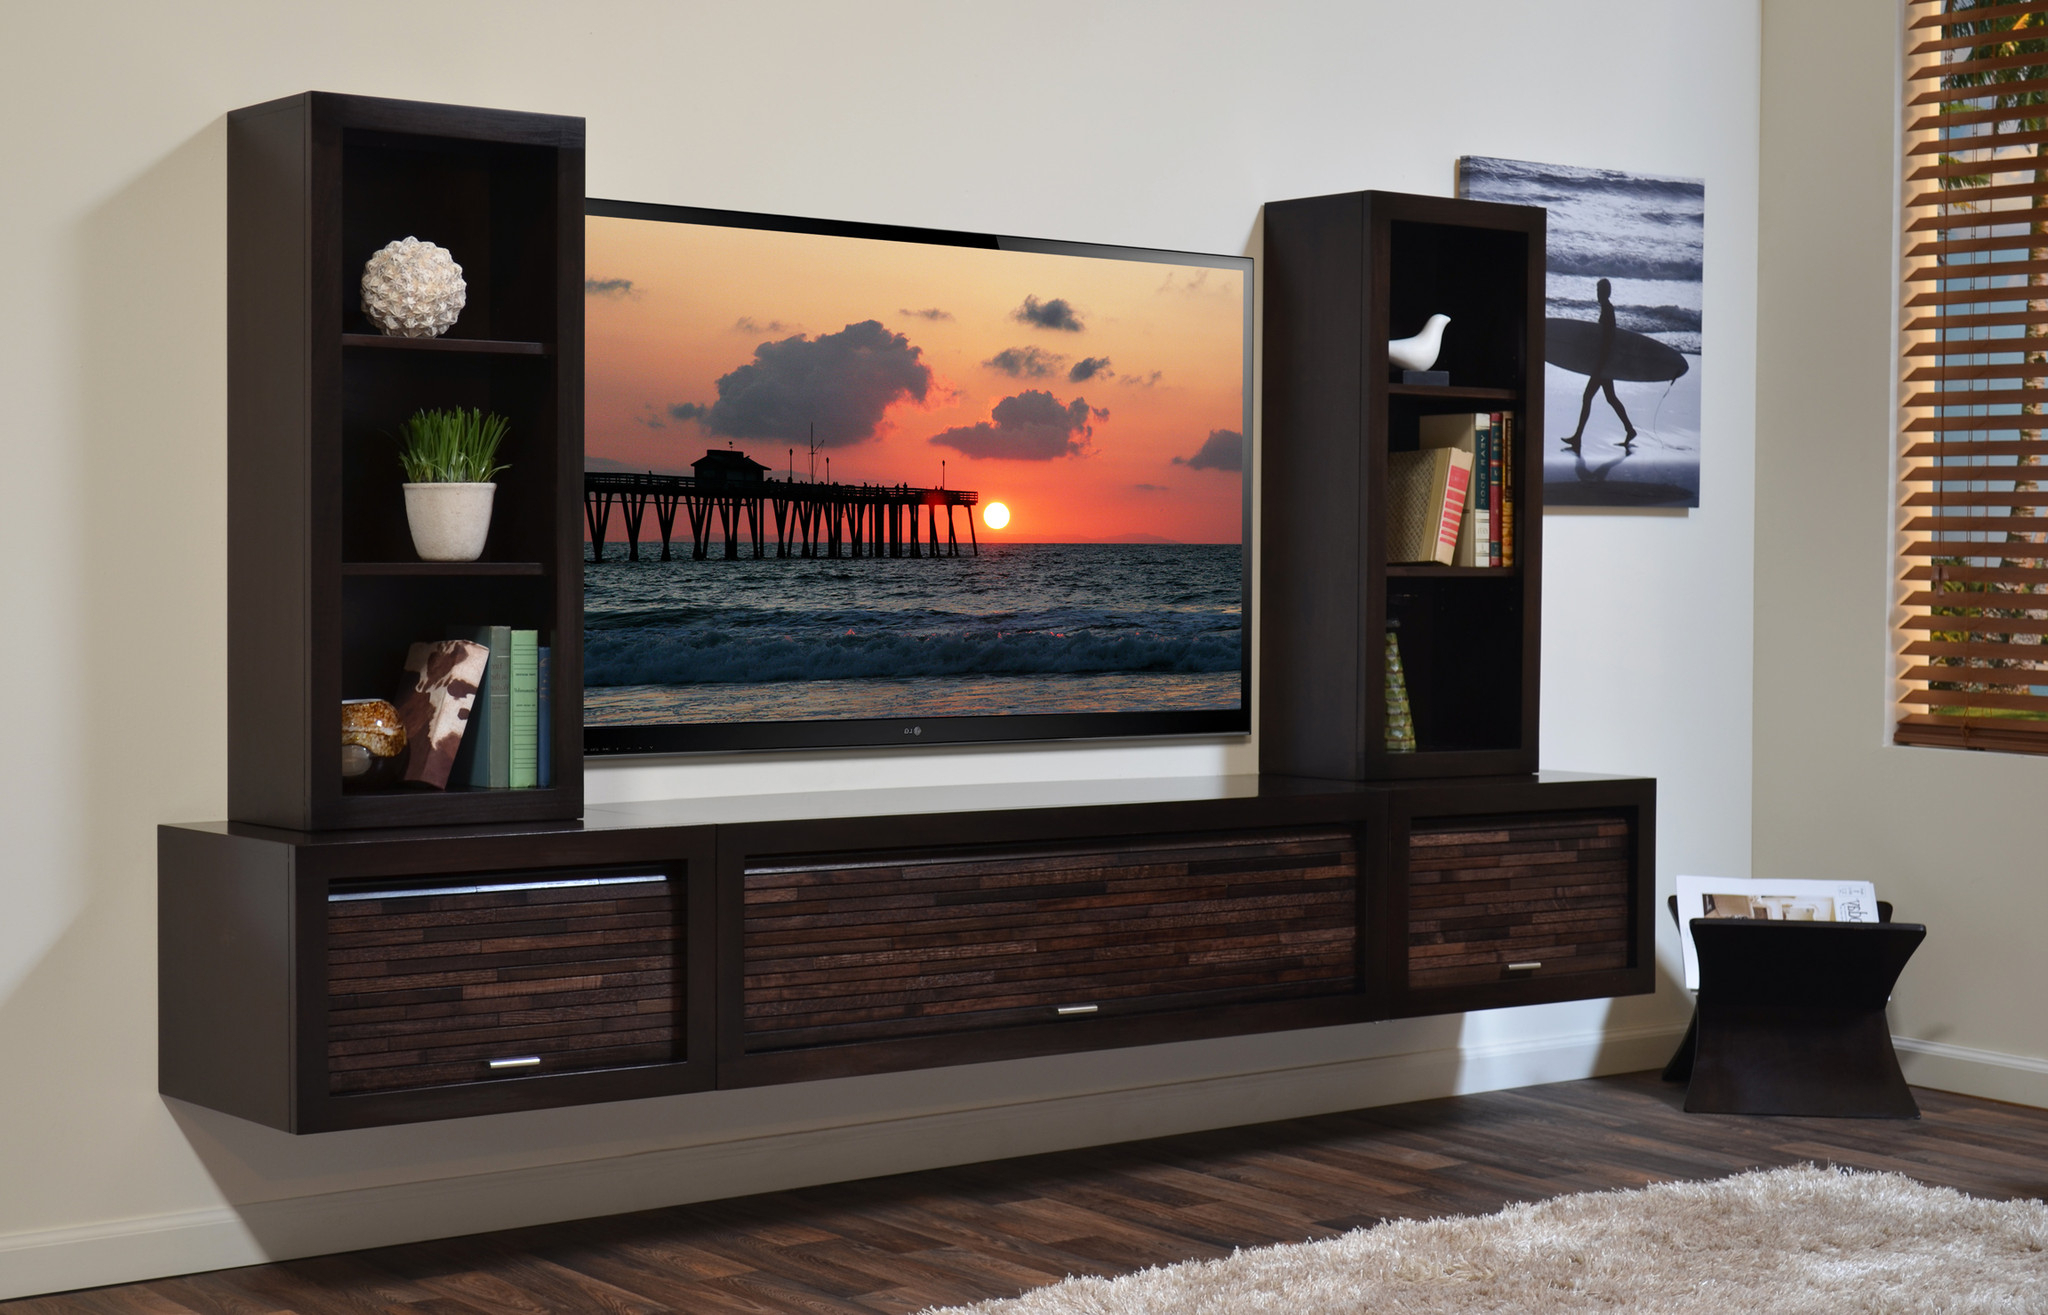 Ikea Hemnes Tv Stand Discontinued Cabinet With Doors Besta How To With Regard To Widely Used Entertainment Center Tv Stands (Gallery 6 of 20)